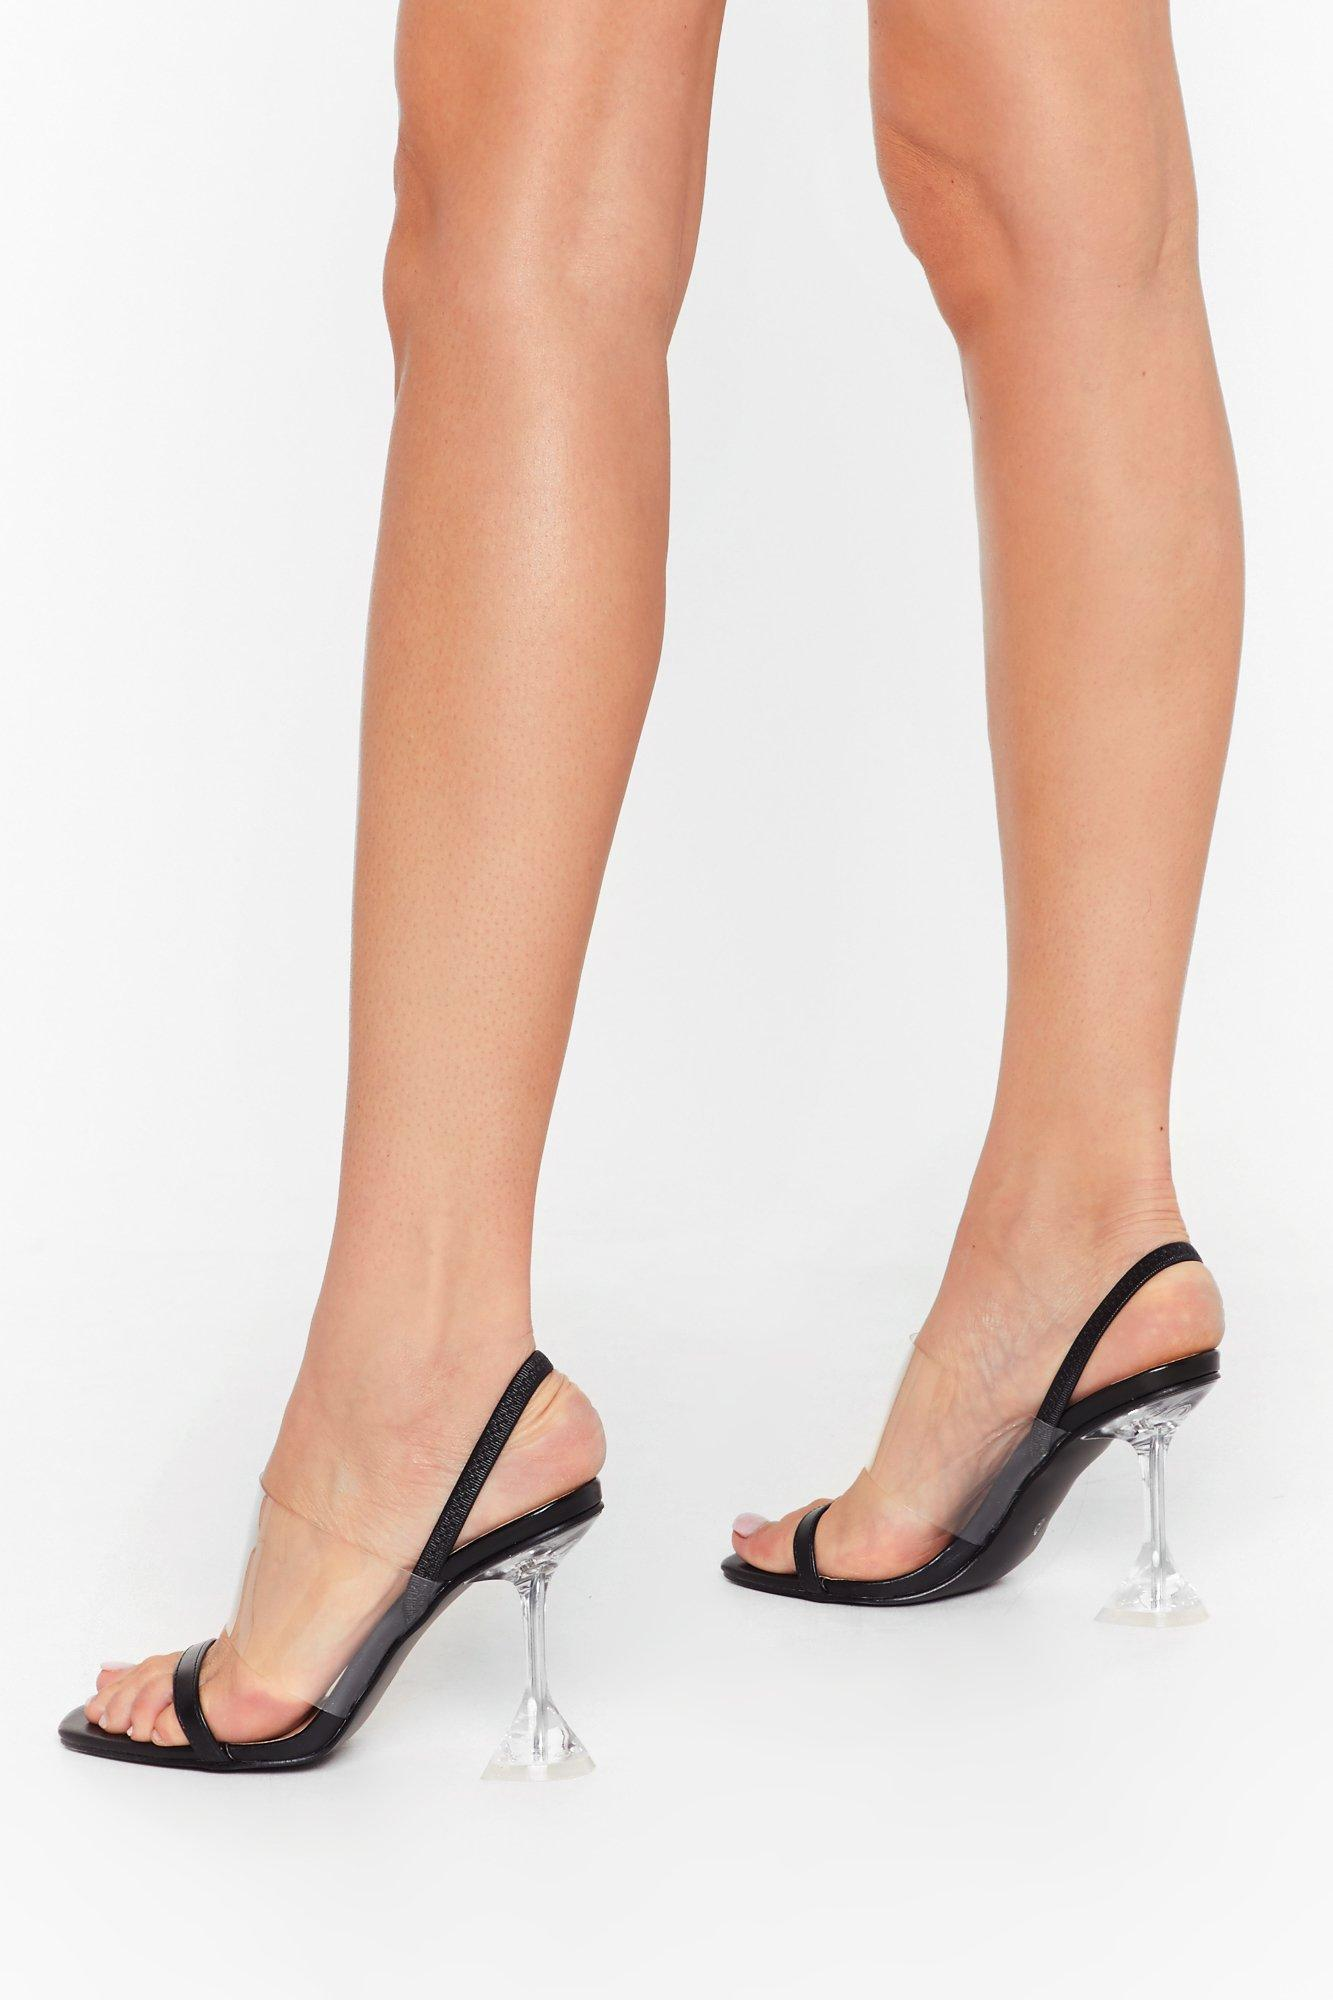 Image of Clears to Us Strappy Stiletto Heels